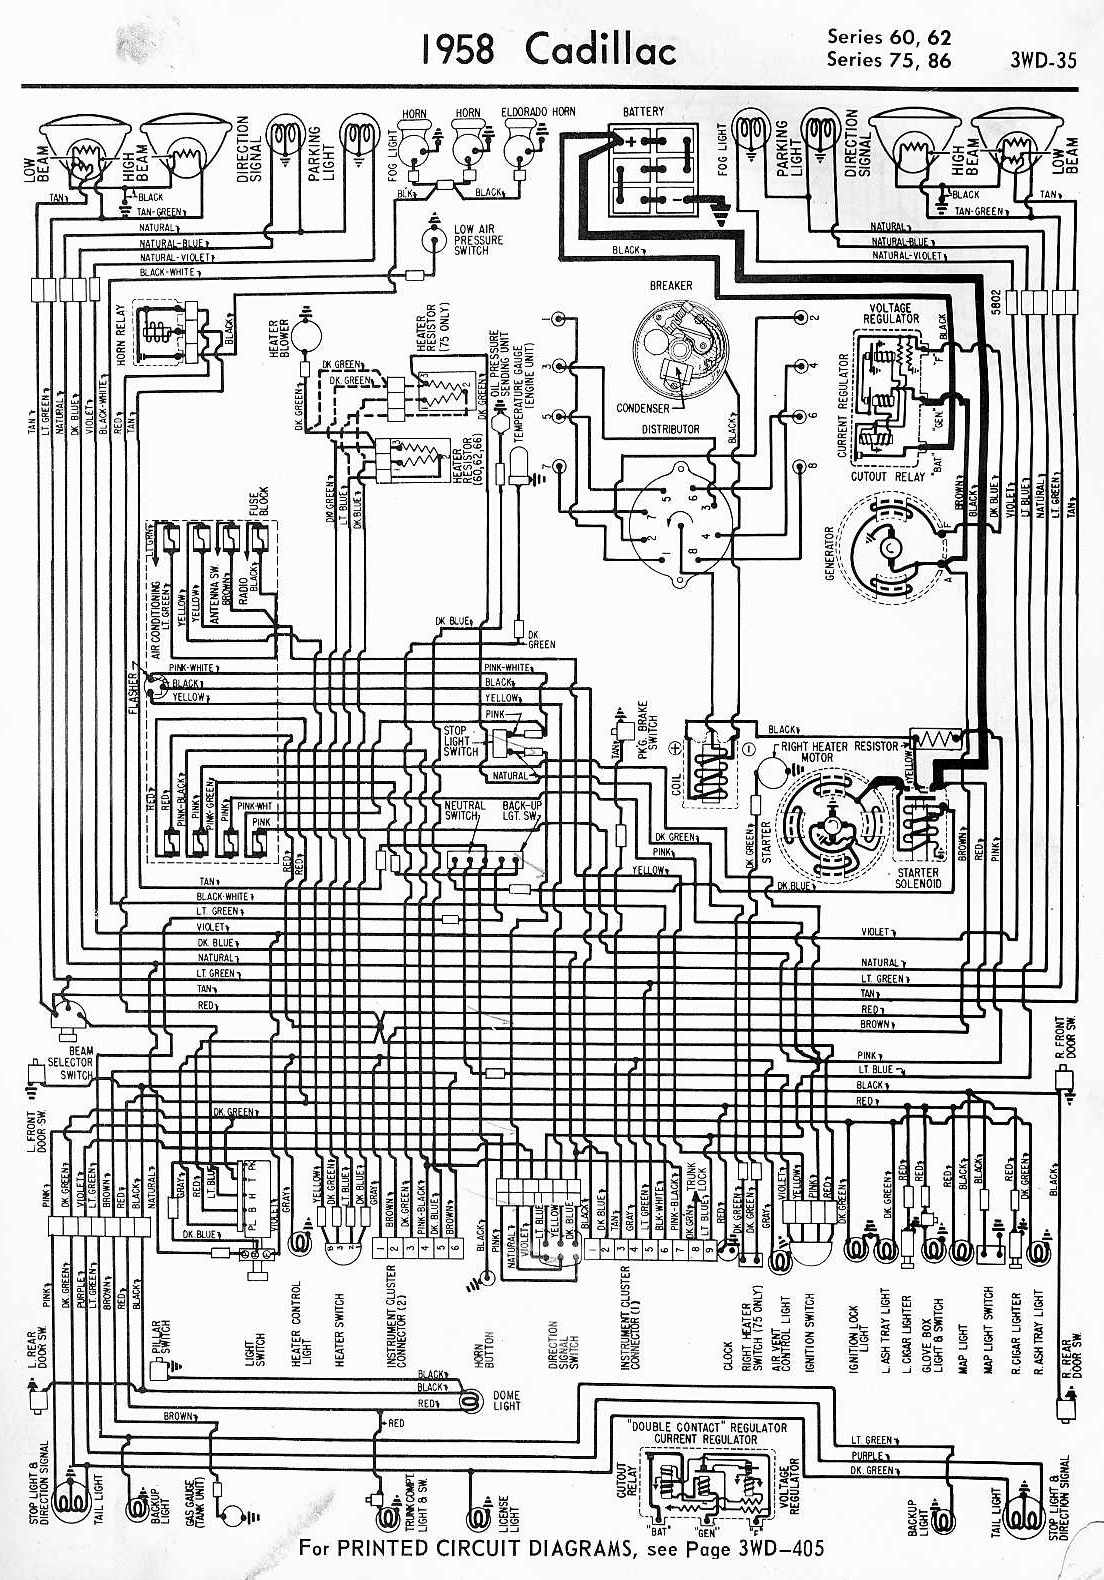 Cadillac Car Manuals Wiring Diagrams Pdf Fault Codes Mitsubishi 2 4 Engine Harness Download